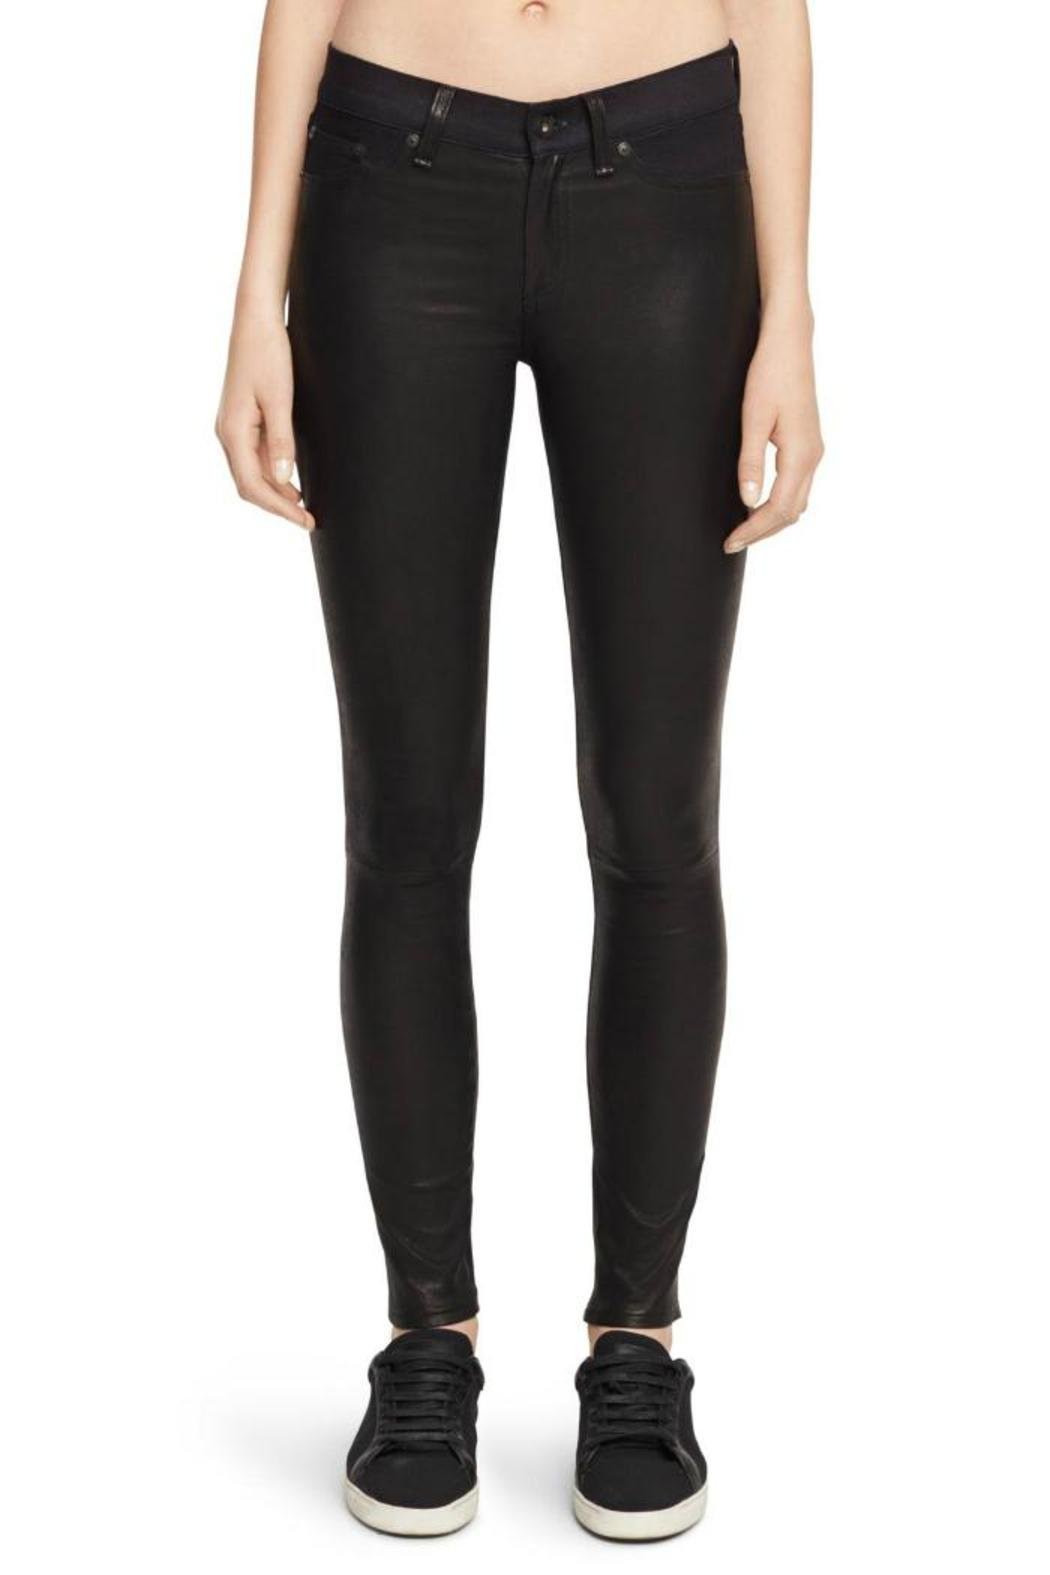 0fb37d09d6e2fa Rag & Bone Hyde Half Leather Pants from Canada by Era Style Loft ...